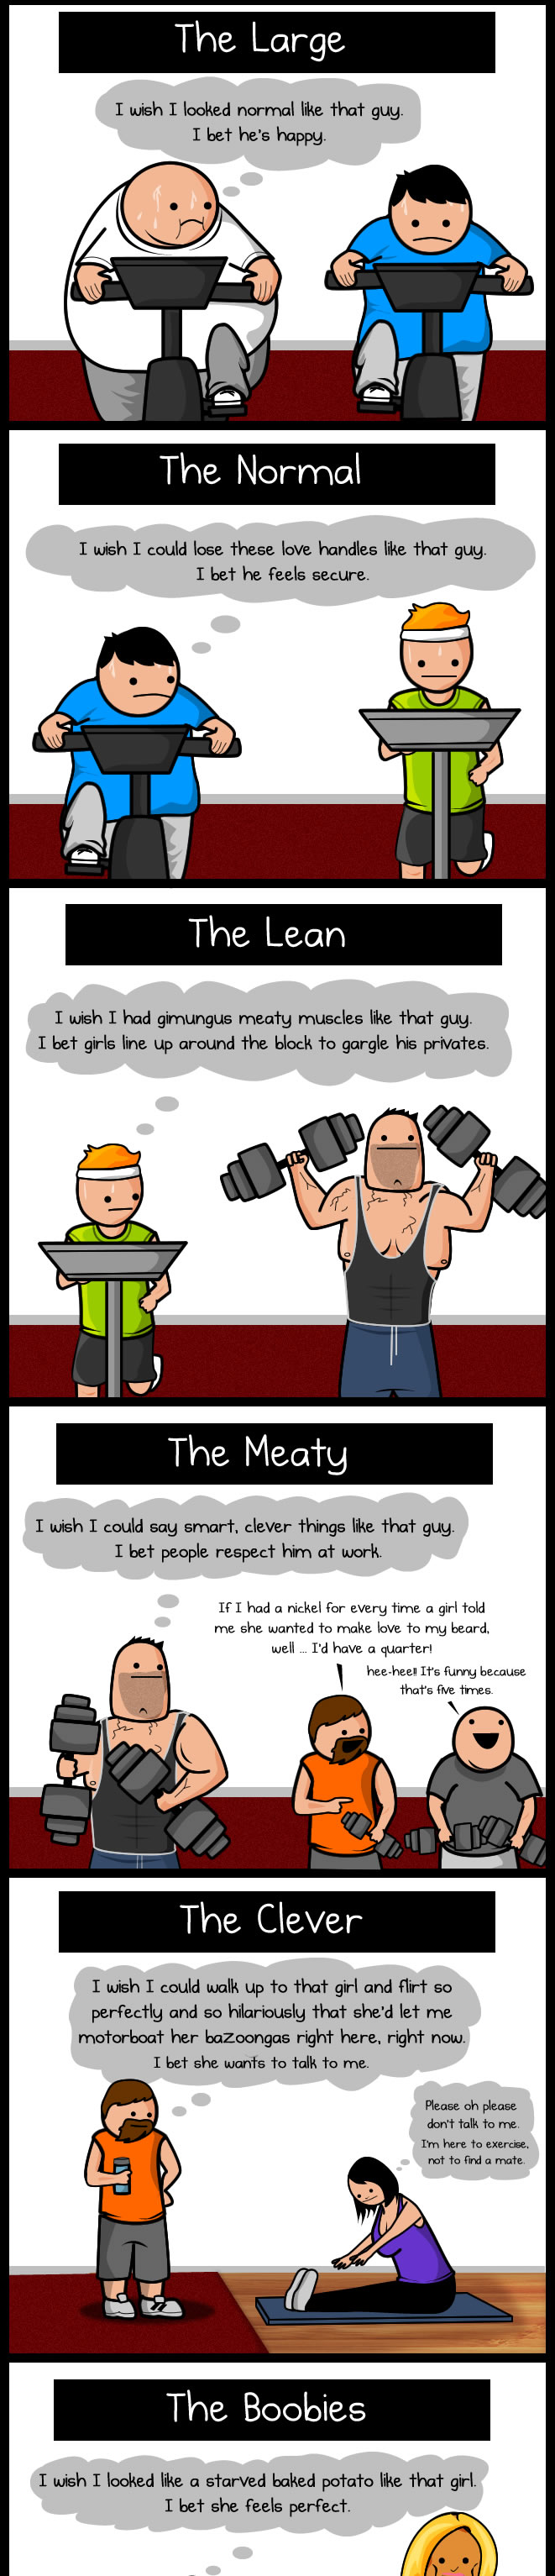 http://s3.amazonaws.com/theoatmeal-img/comics/gym/1.jpg